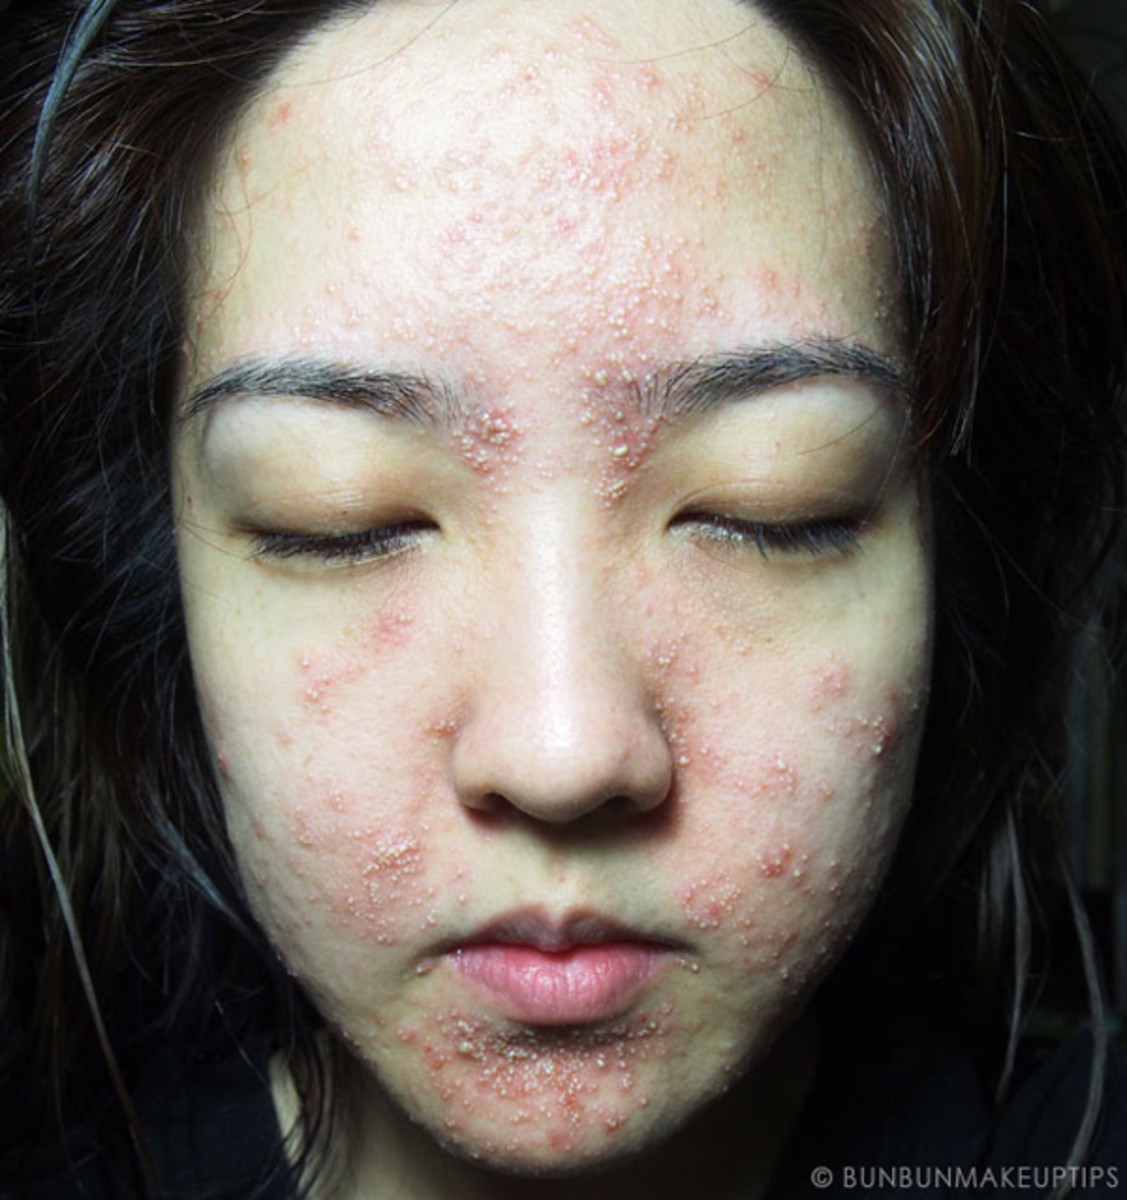 Worst facial in the world - day 4